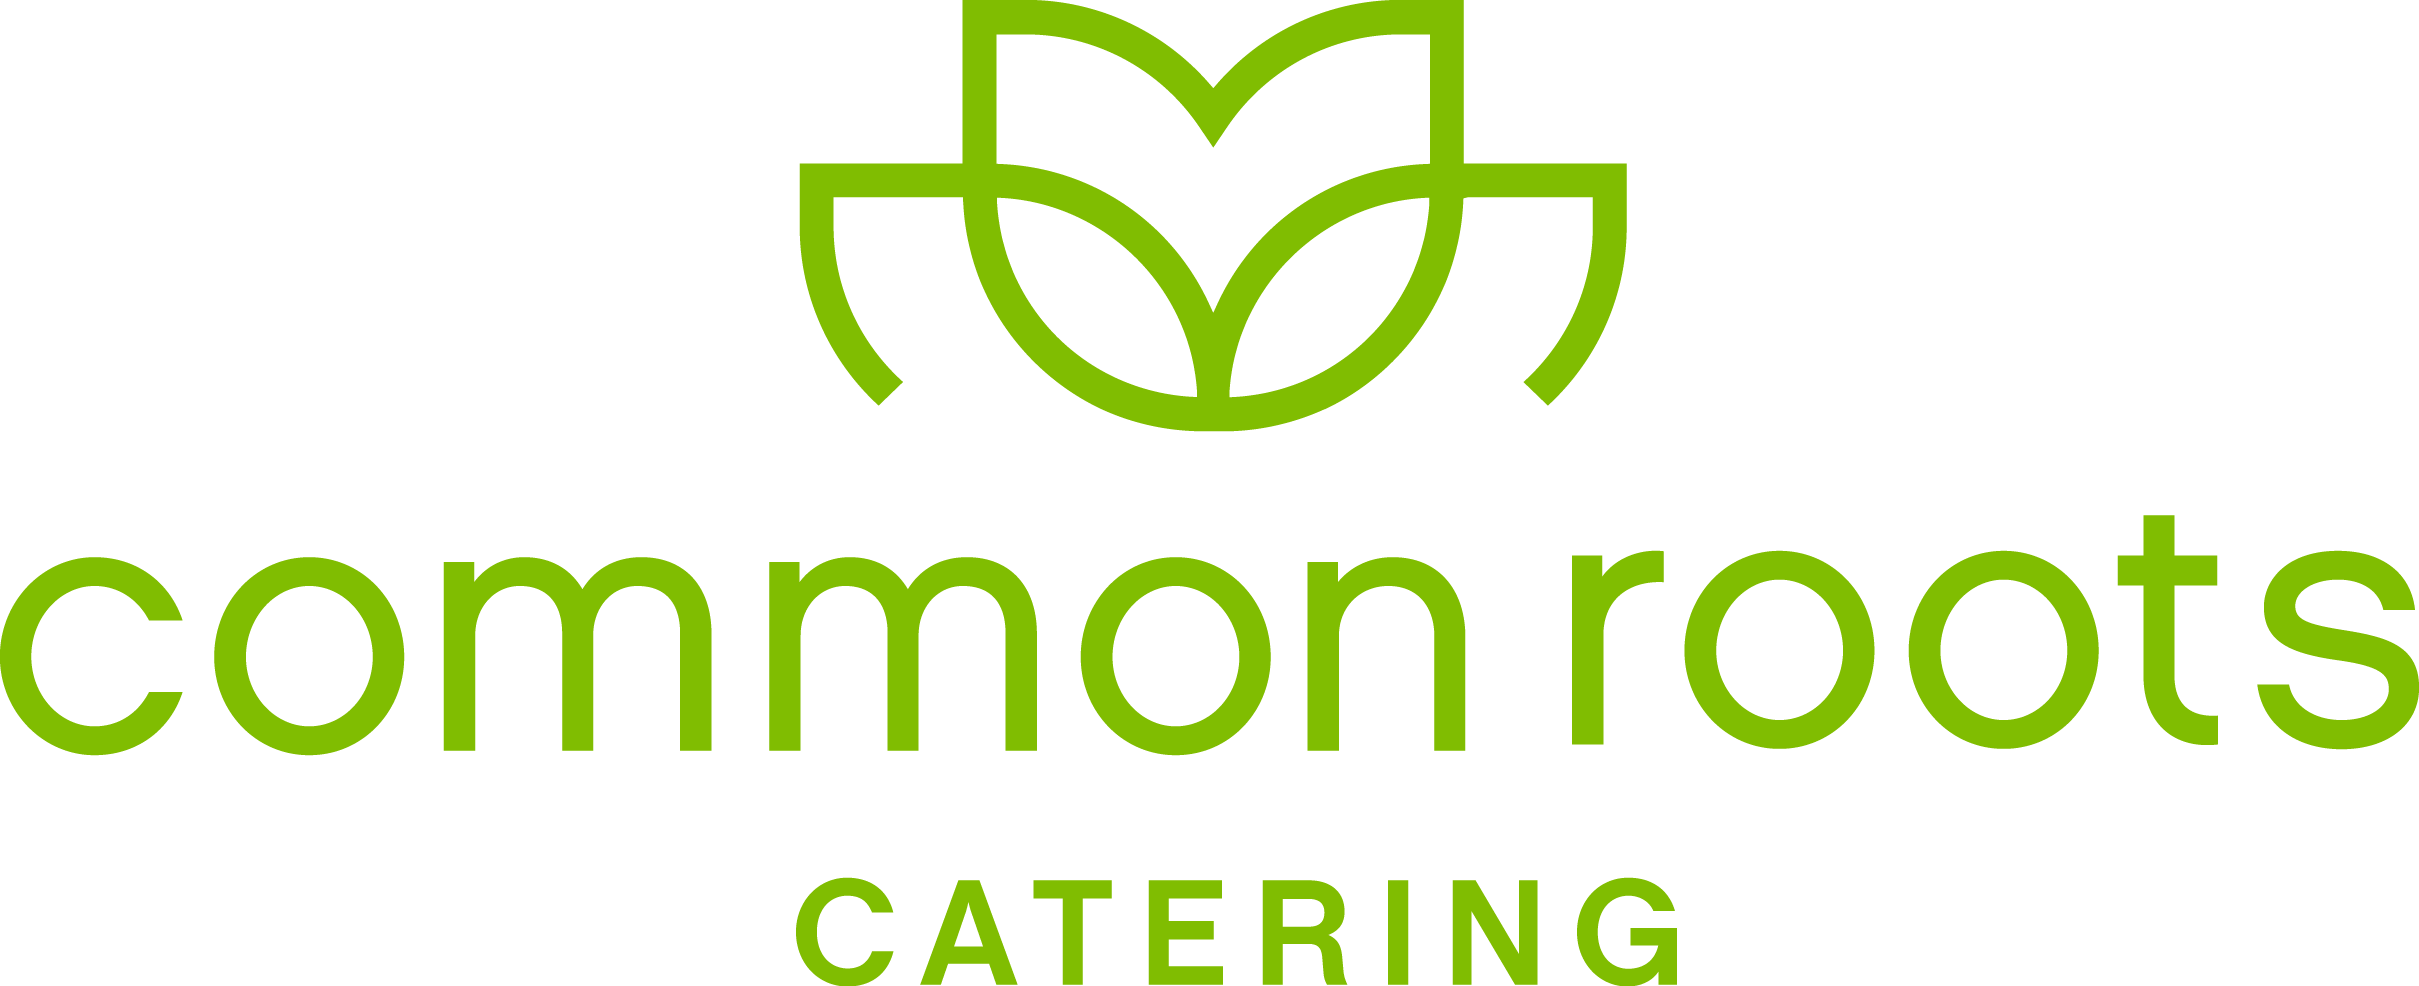 CateringLogoMark.png